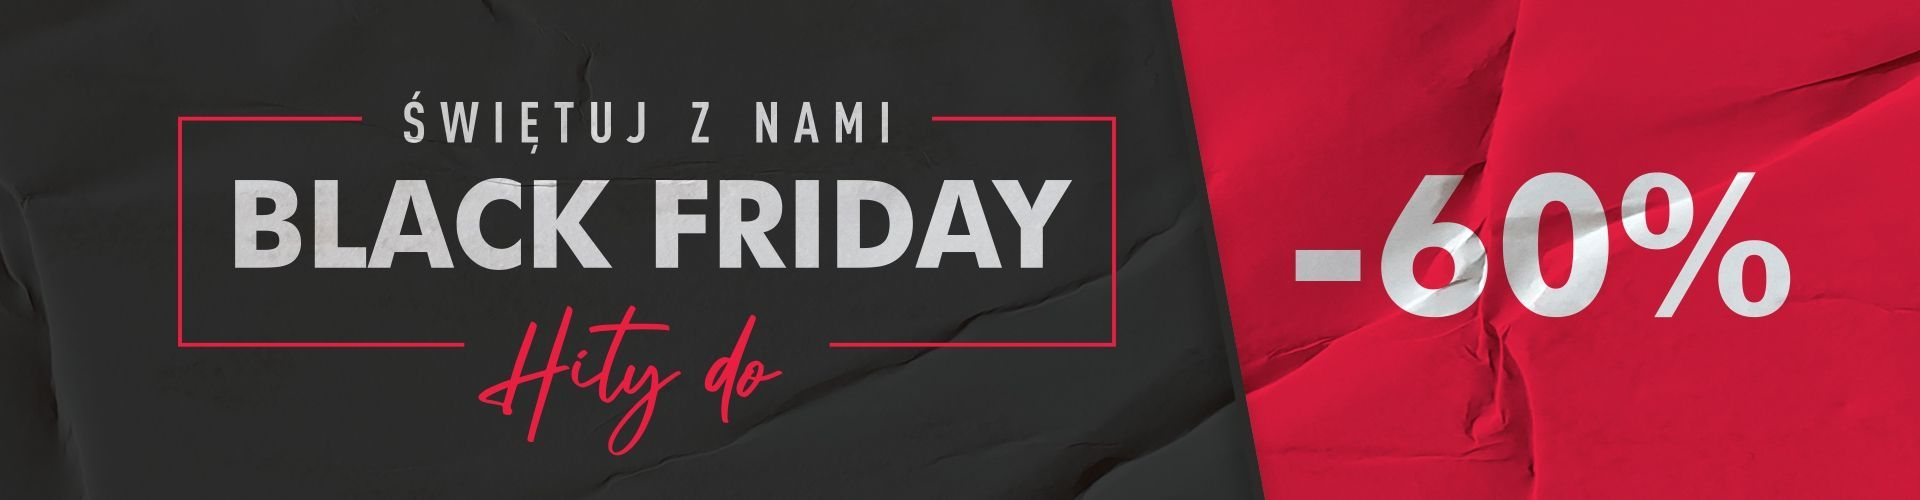 Świętuj z nami Black Friday